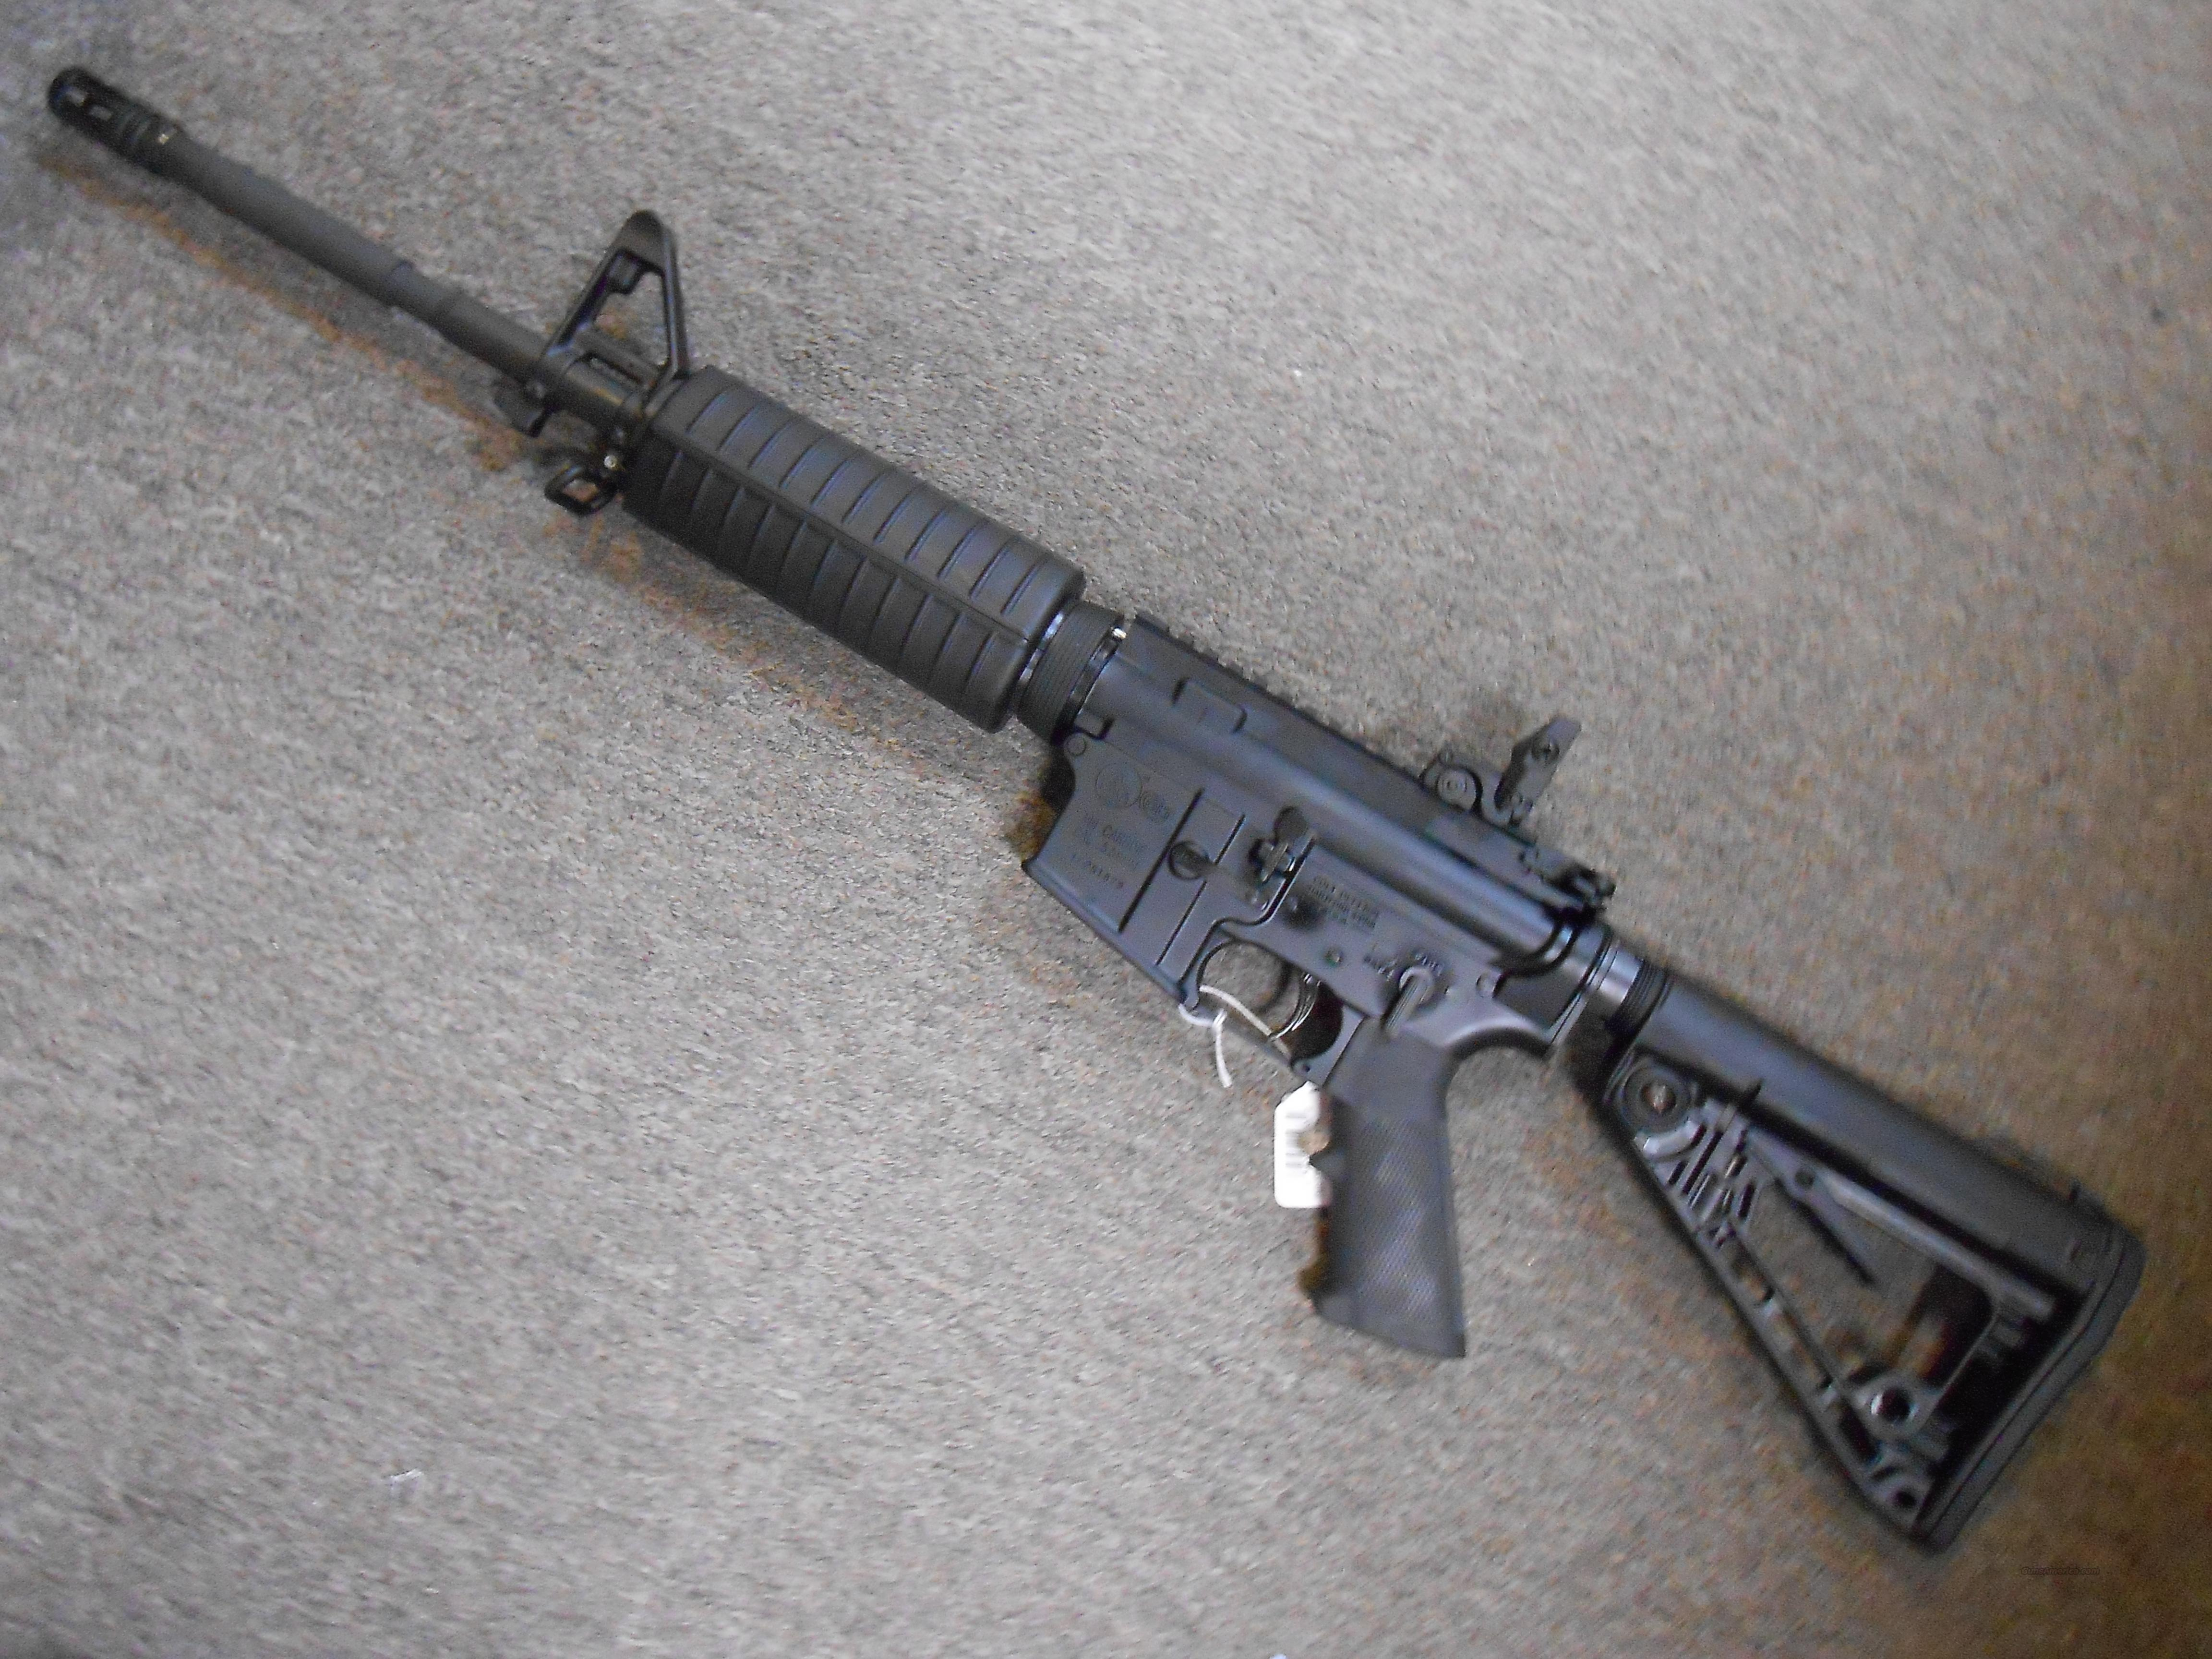 Colt LE6920 M4 A3 AR 15 NEW AR15  Guns > Rifles > Colt Military/Tactical Rifles